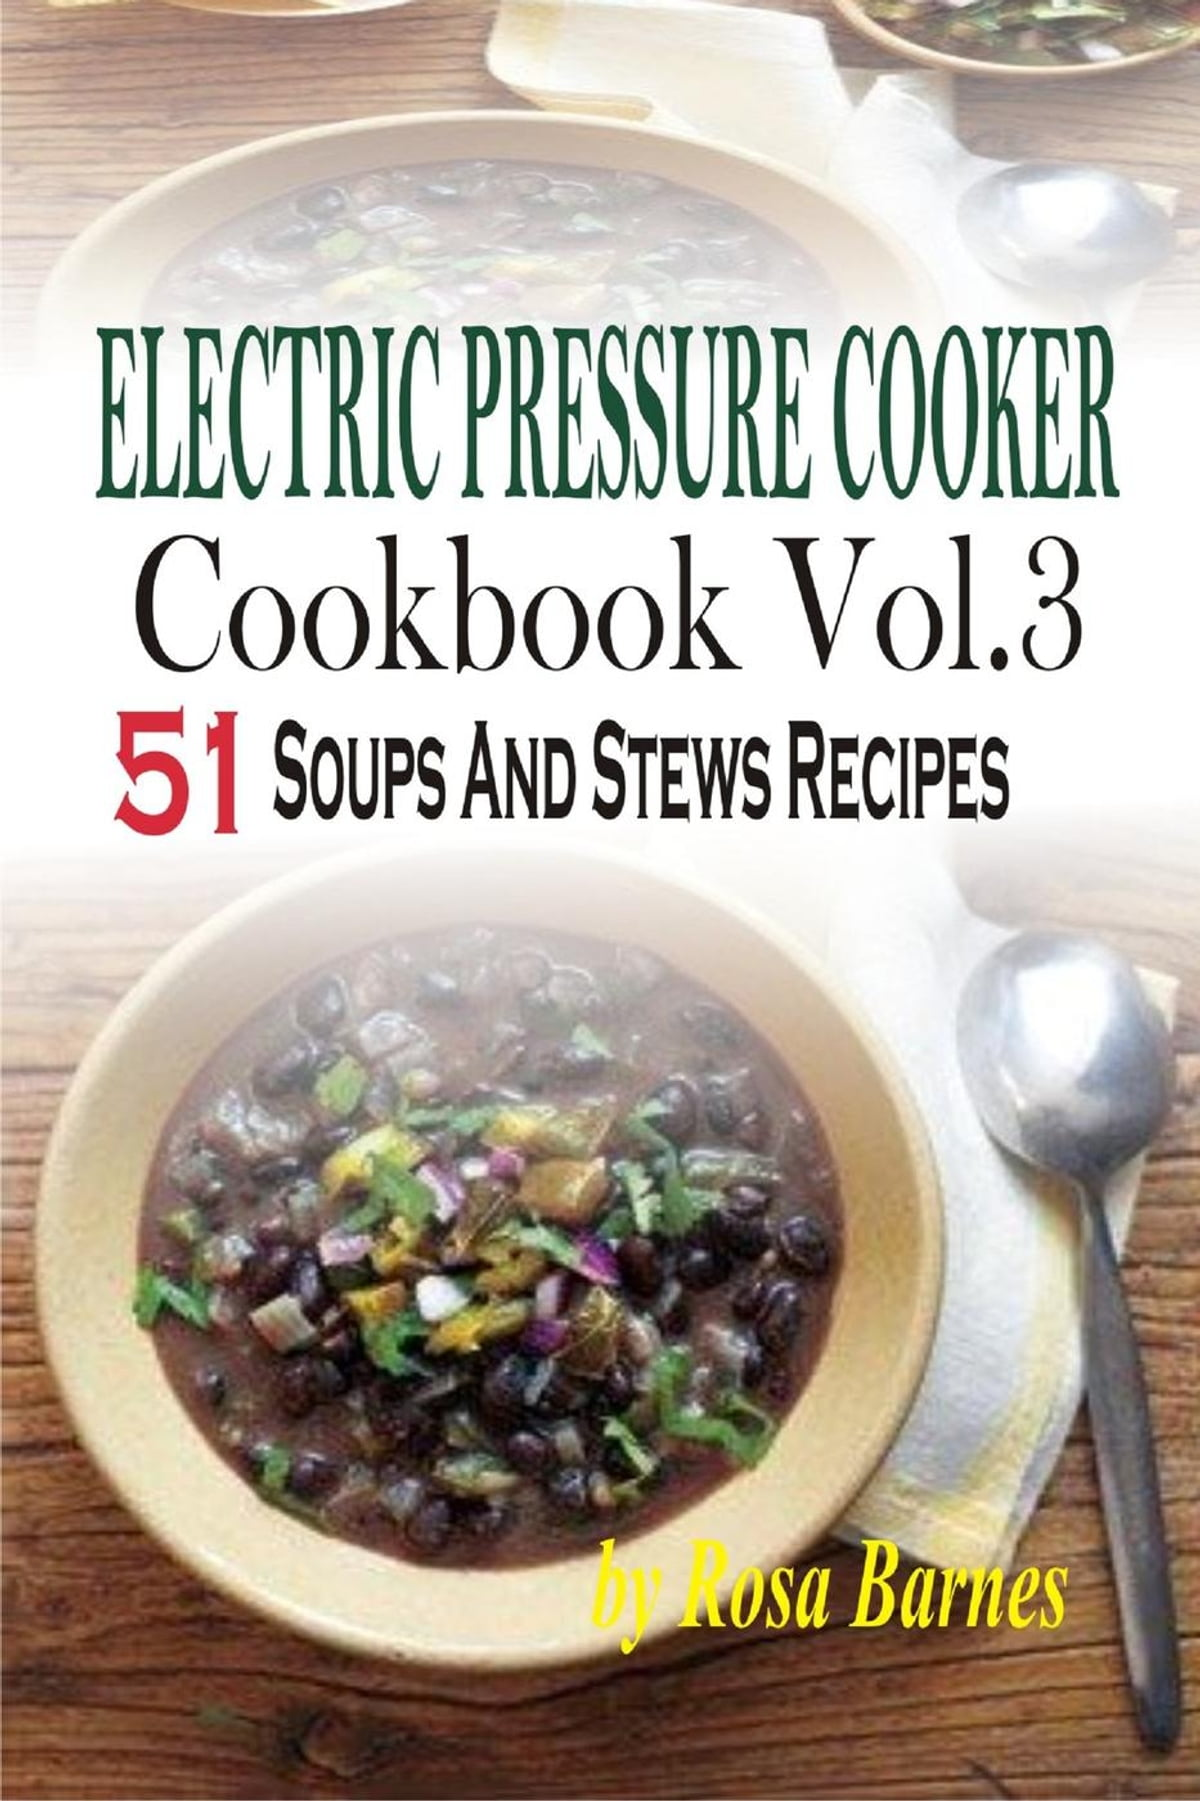 Electric Pressure Cooker Cookbook: Vol.3 51 Soups And Stews Recipes eBook  by Rosa Barnes - 9781516364190 | Rakuten Kobo